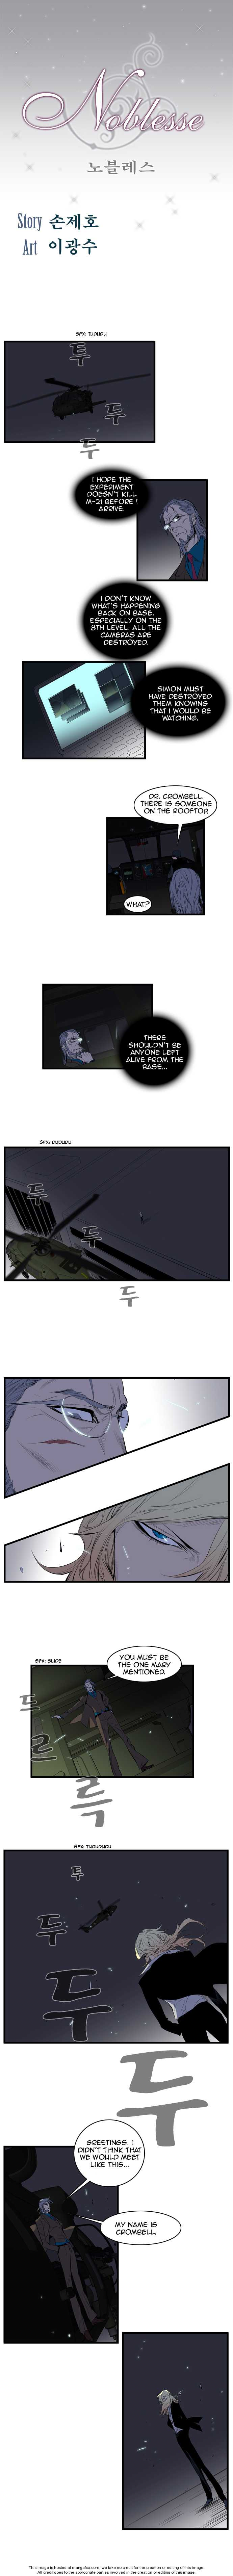 Noblesse 88 Page 1